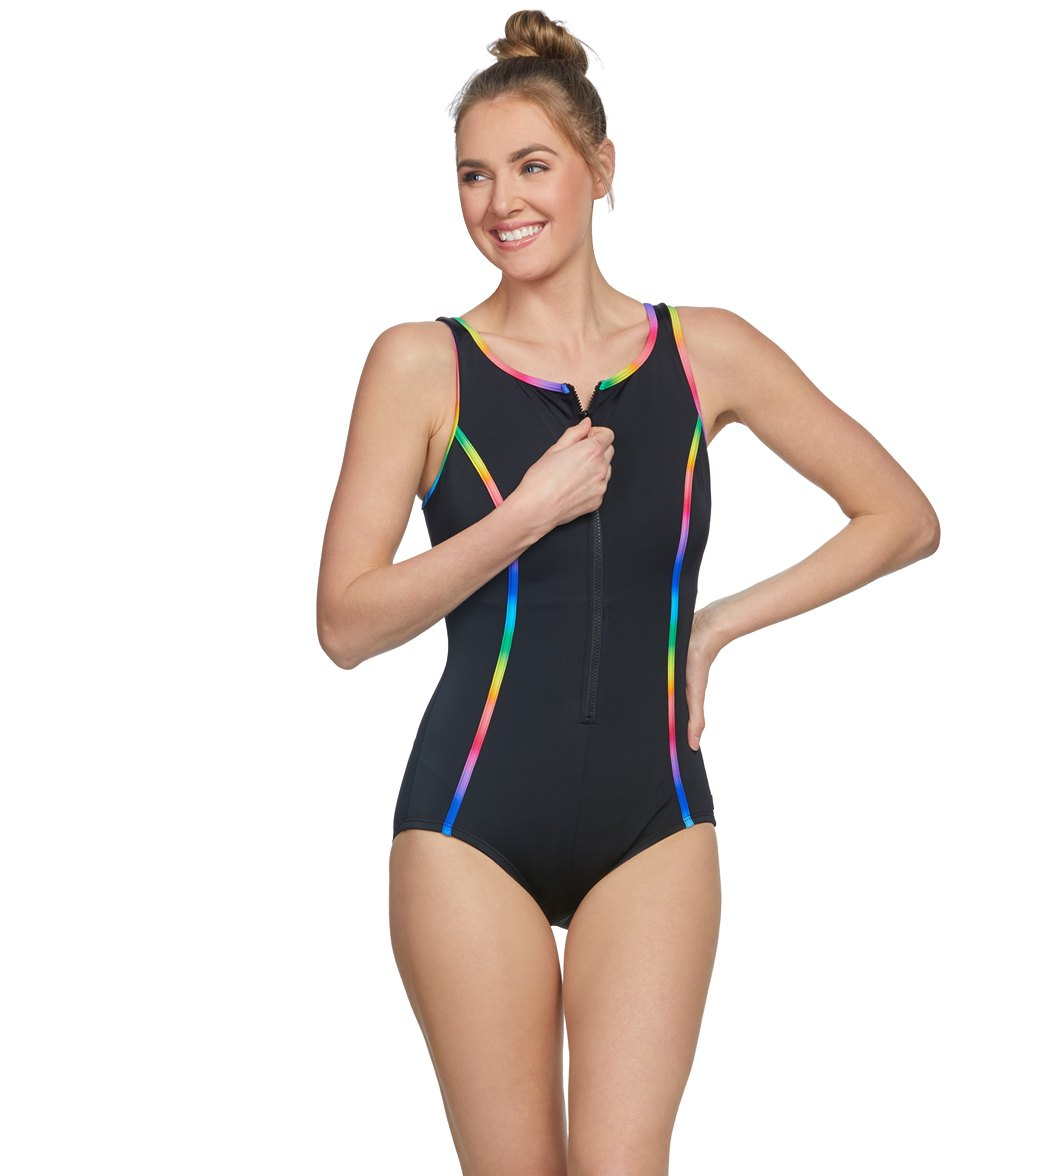 c62d5124a84 Reebok Women s Sunglow Zip Front High Neck Chlorine Resistant One Piece  Swimsuit at SwimOutlet.com - Free Shipping